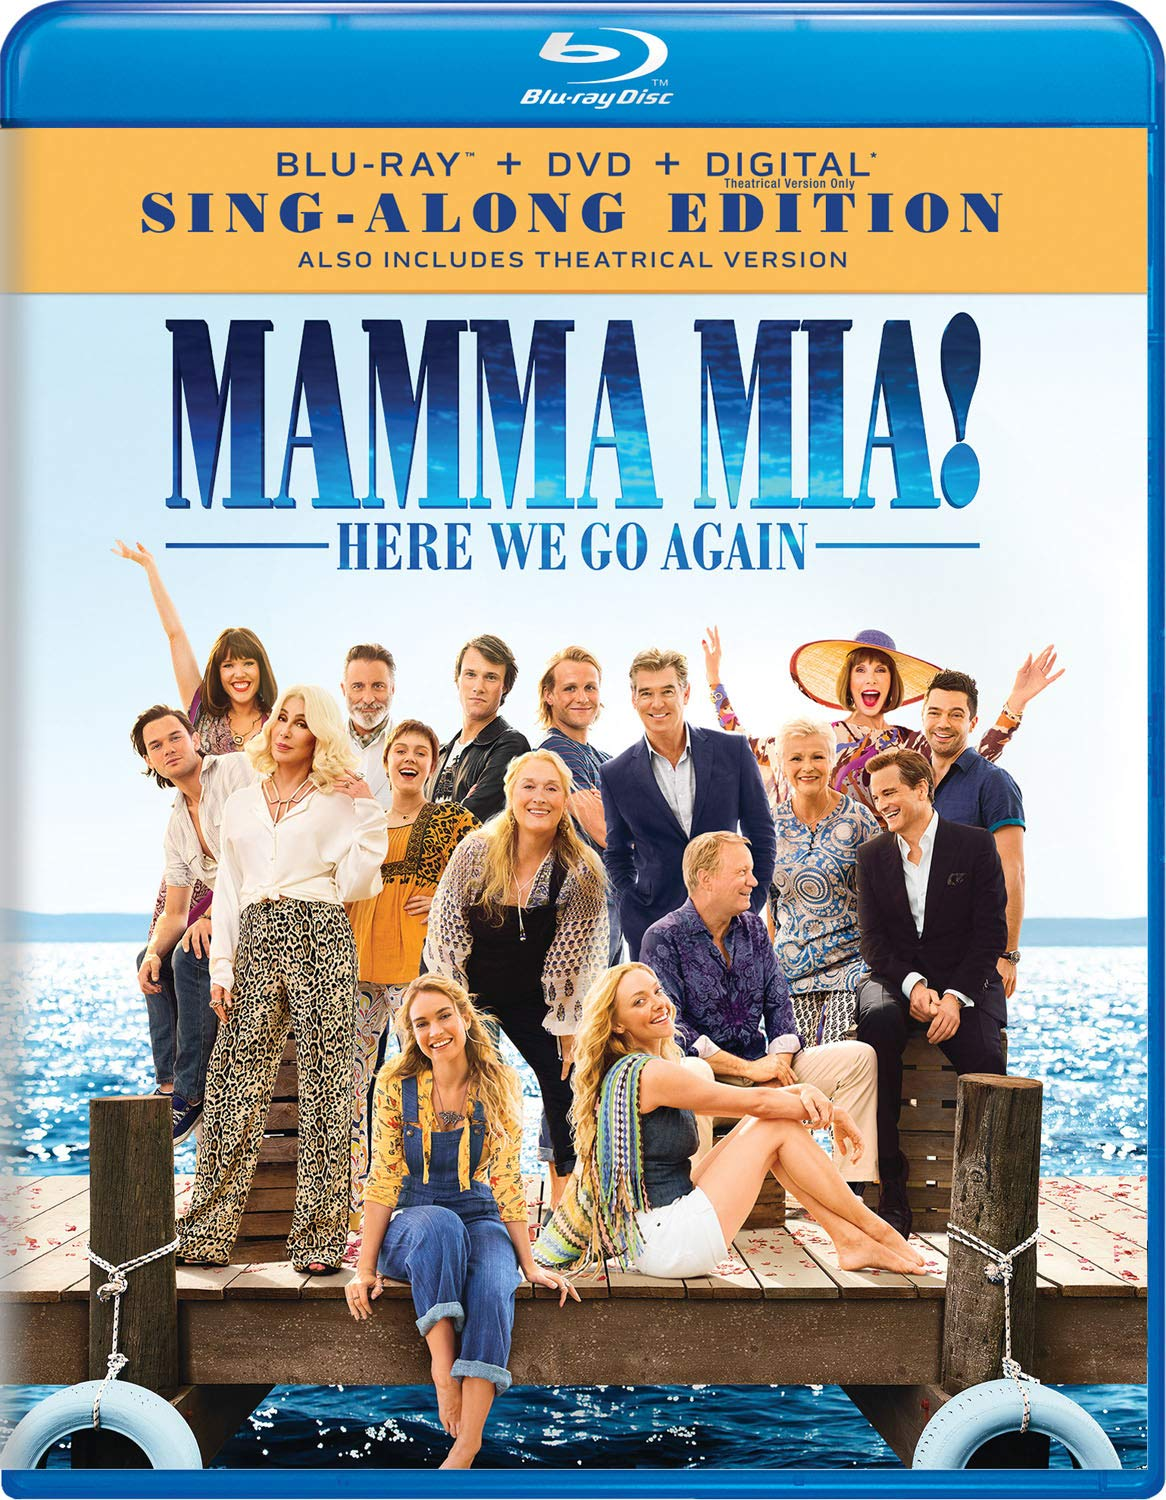 Blu-ray : Mamma Mia!: Here We Go Again (With DVD, 2 Pack, Digital Copy)